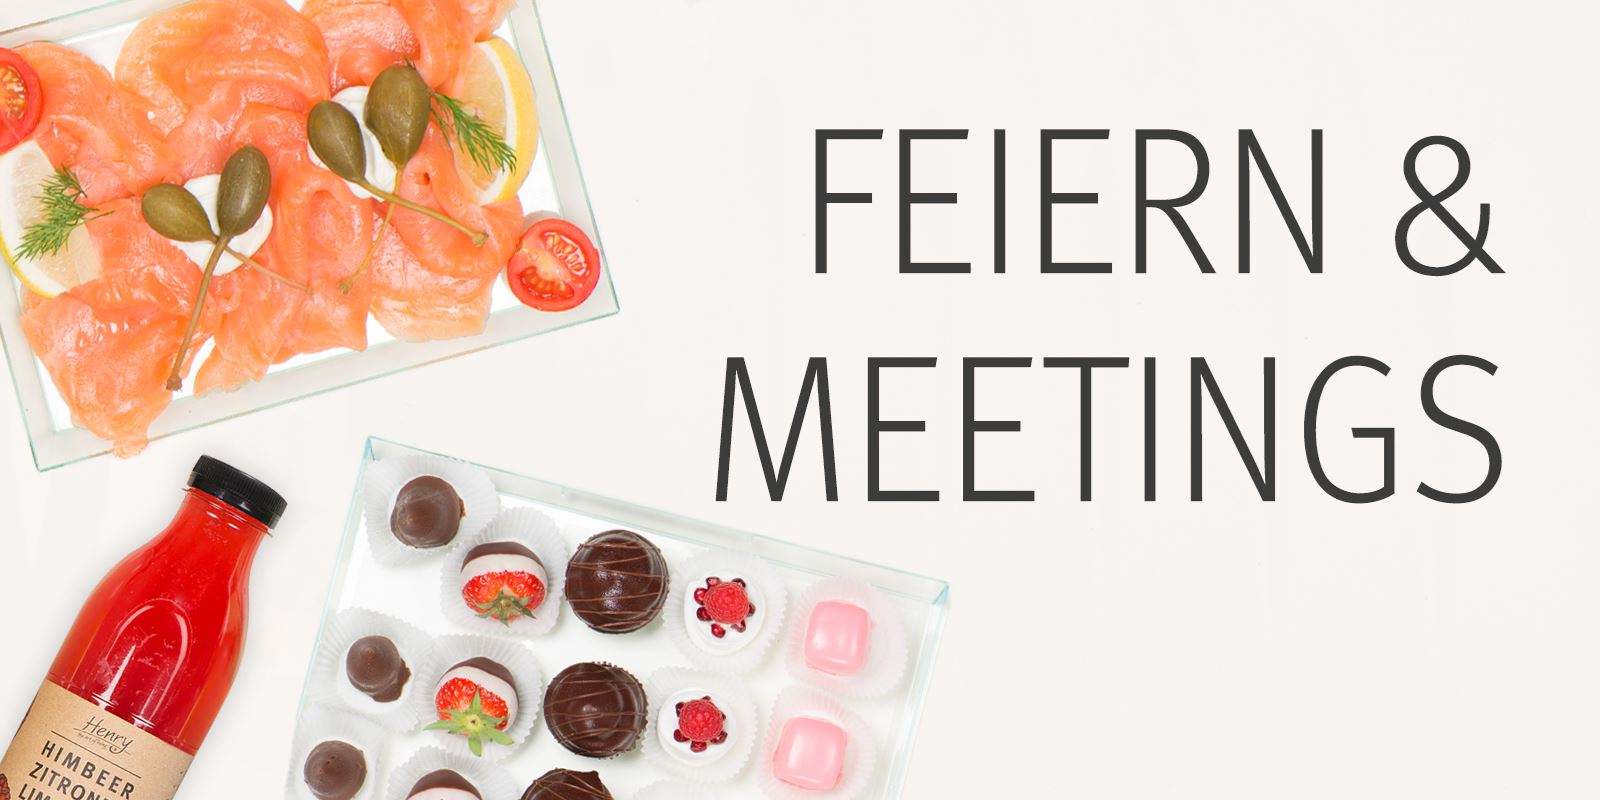 Feiern & Meetings